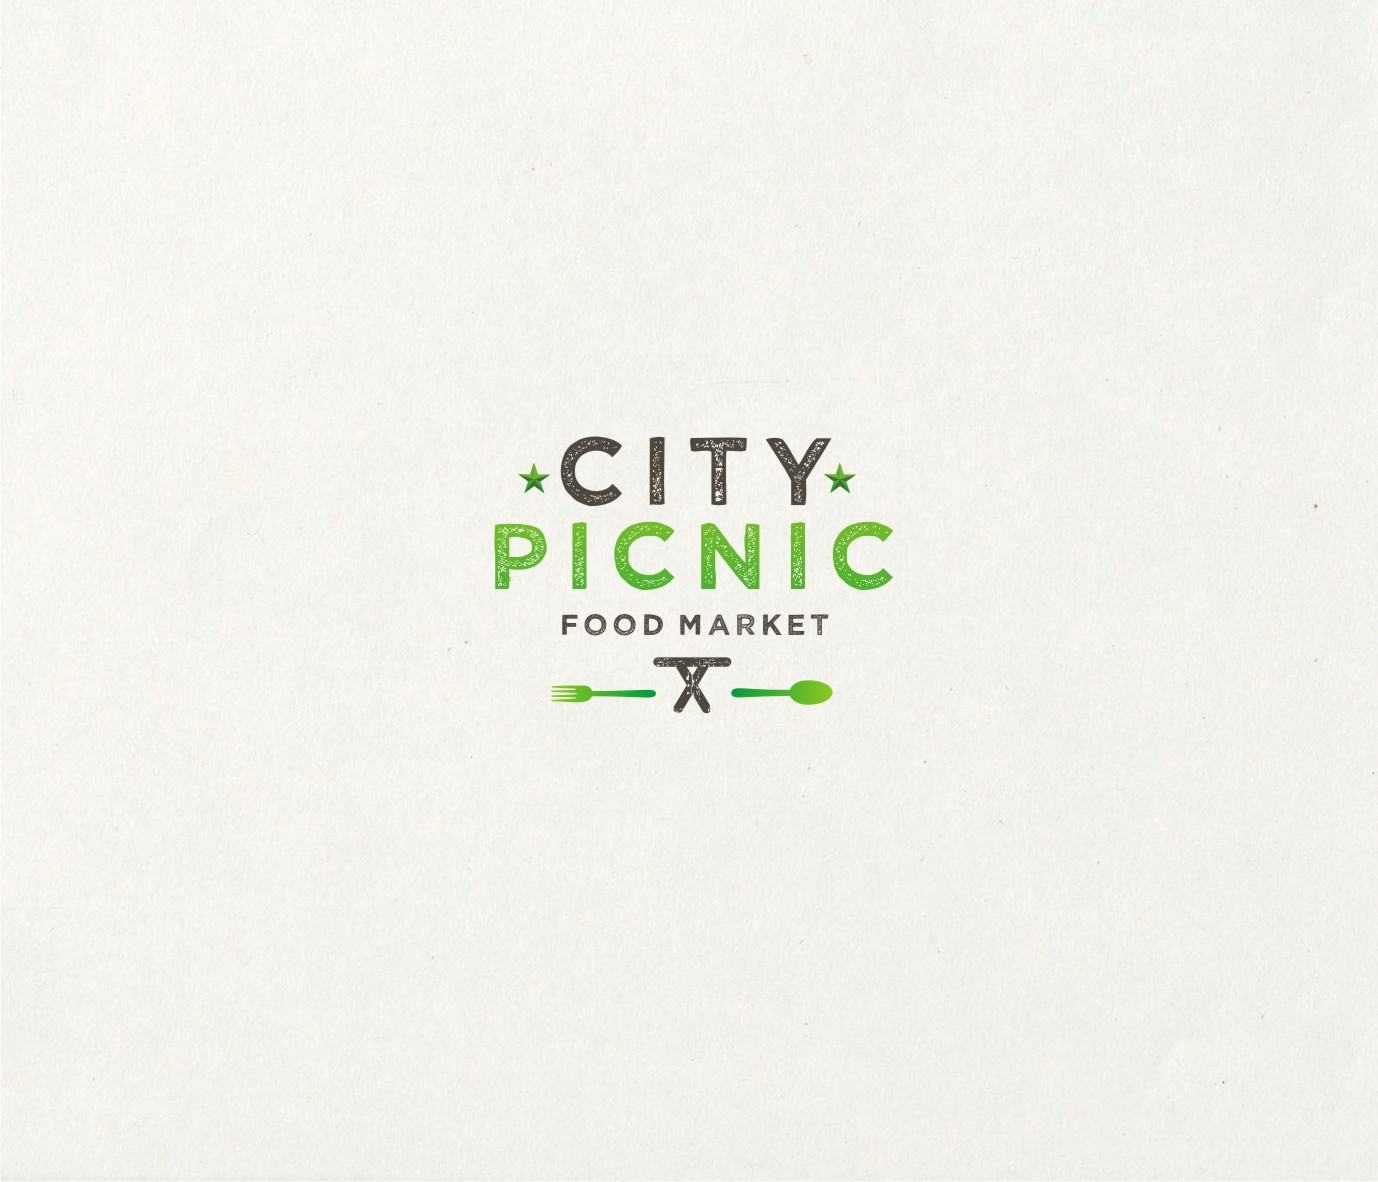 Create a logo for a cool new outdoor food market - City Picnic